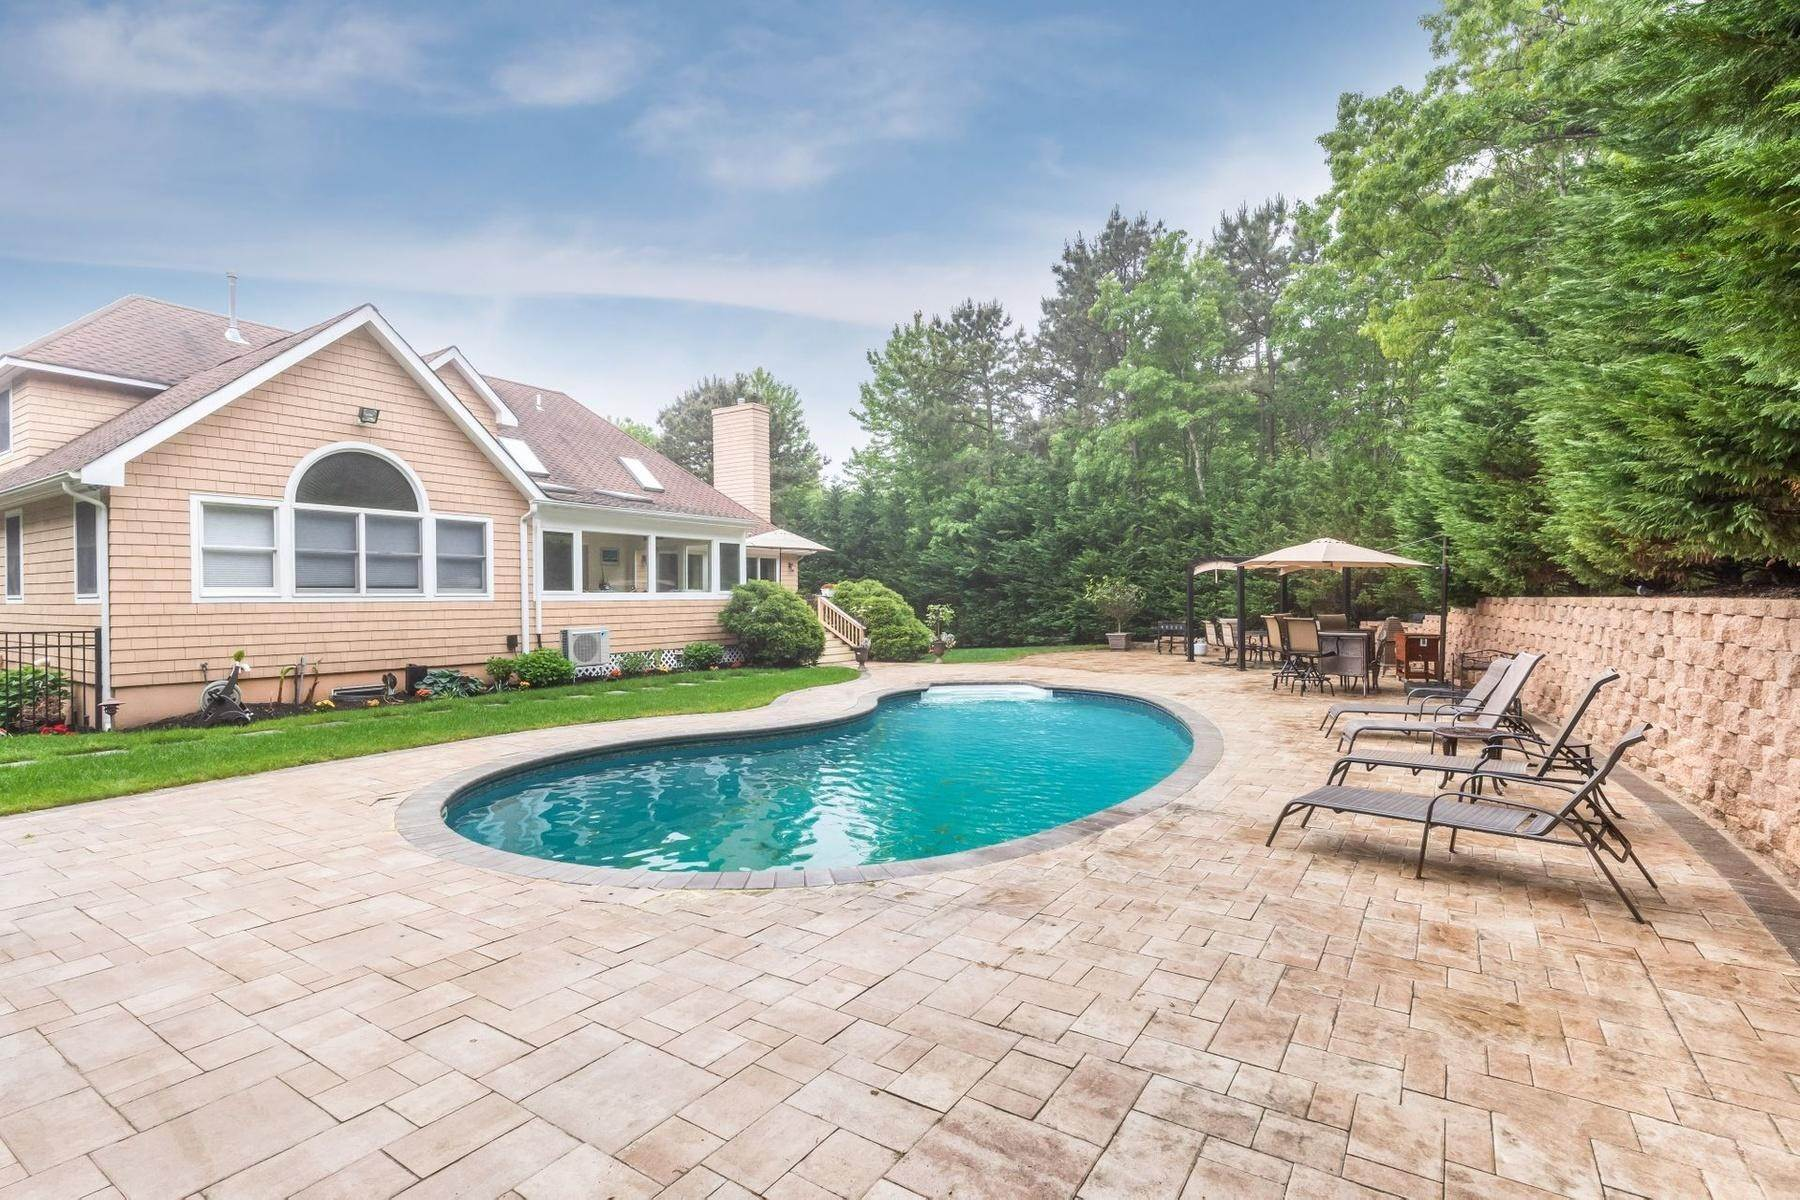 18. Single Family Home at Upscale Home In The Pines With Inground Heated Pool East Quogue, NY 11942